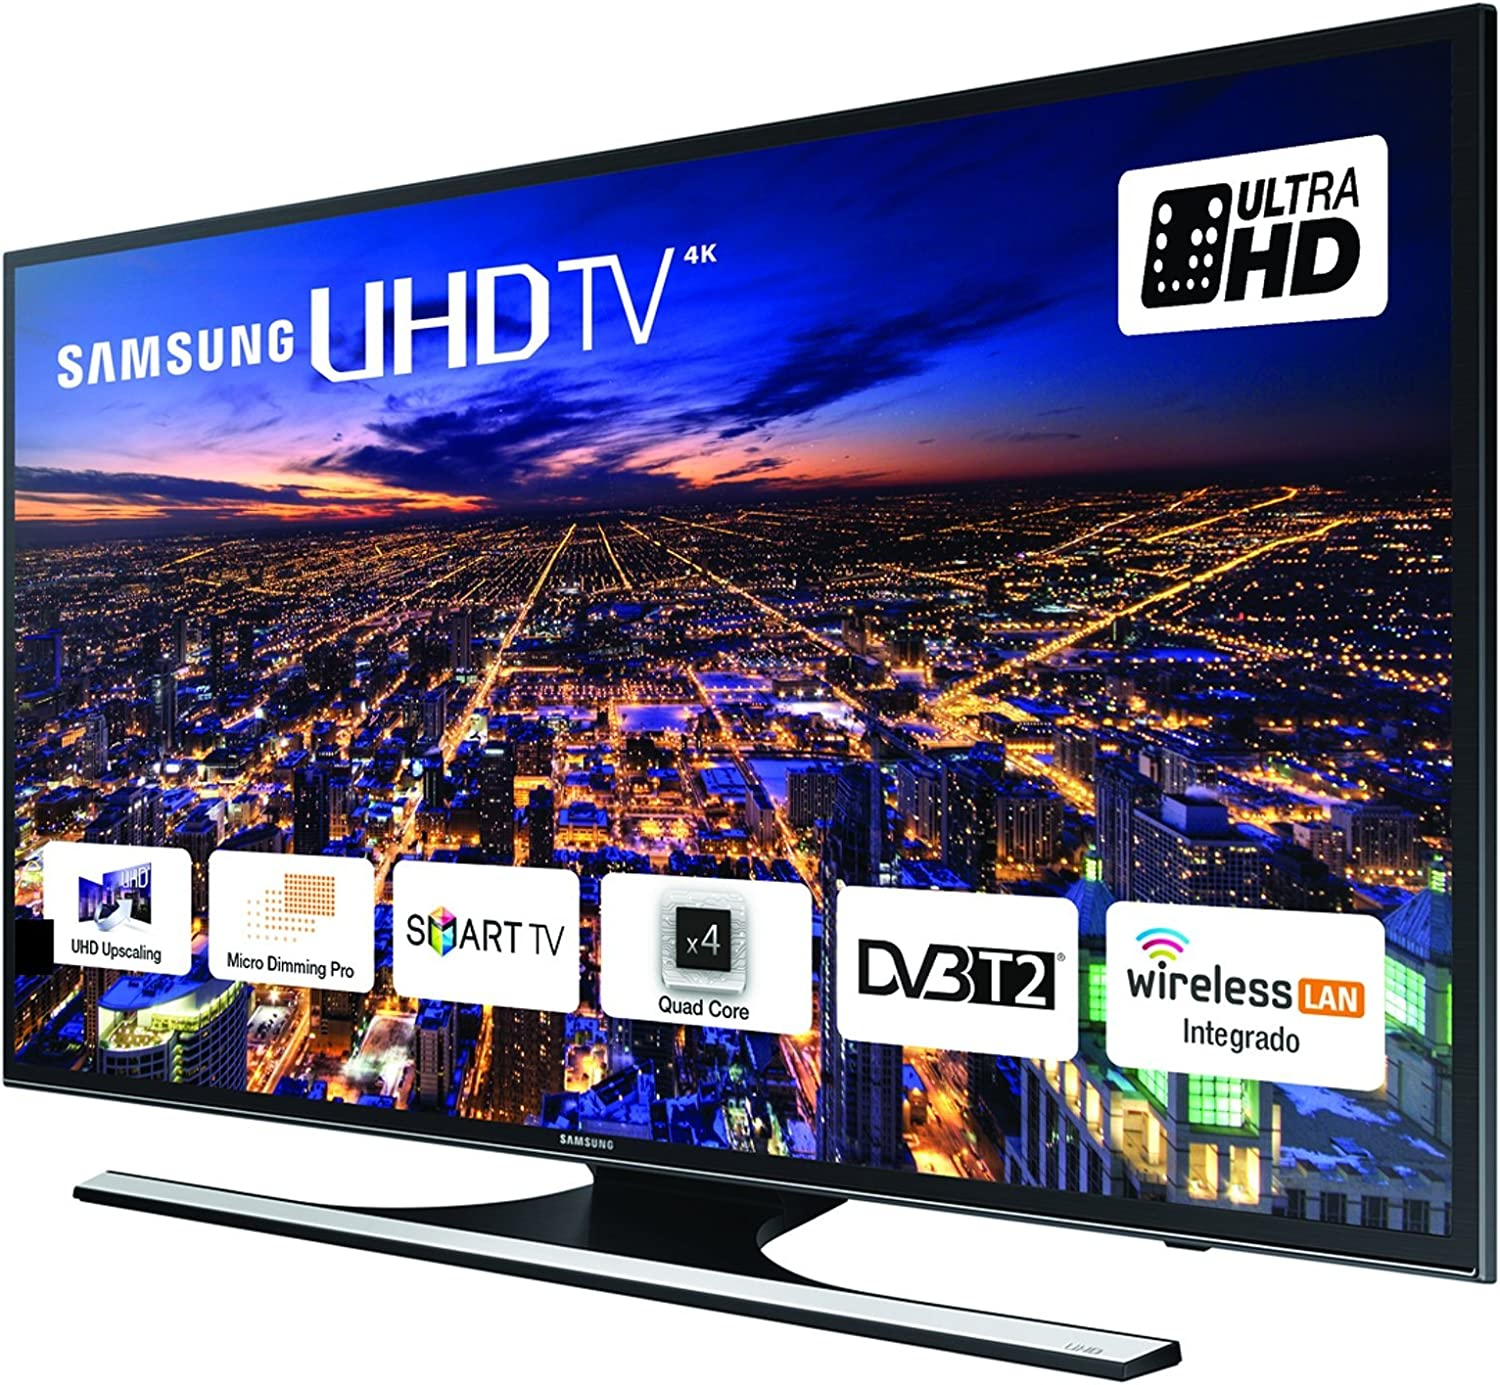 TV LED UHD 4K SAMSUNG SMART TV 40 UE40JU6410 ULTRA HD / 1000 HZ / A+ / WI-FI INTEGRADO: Amazon.es: Electrónica